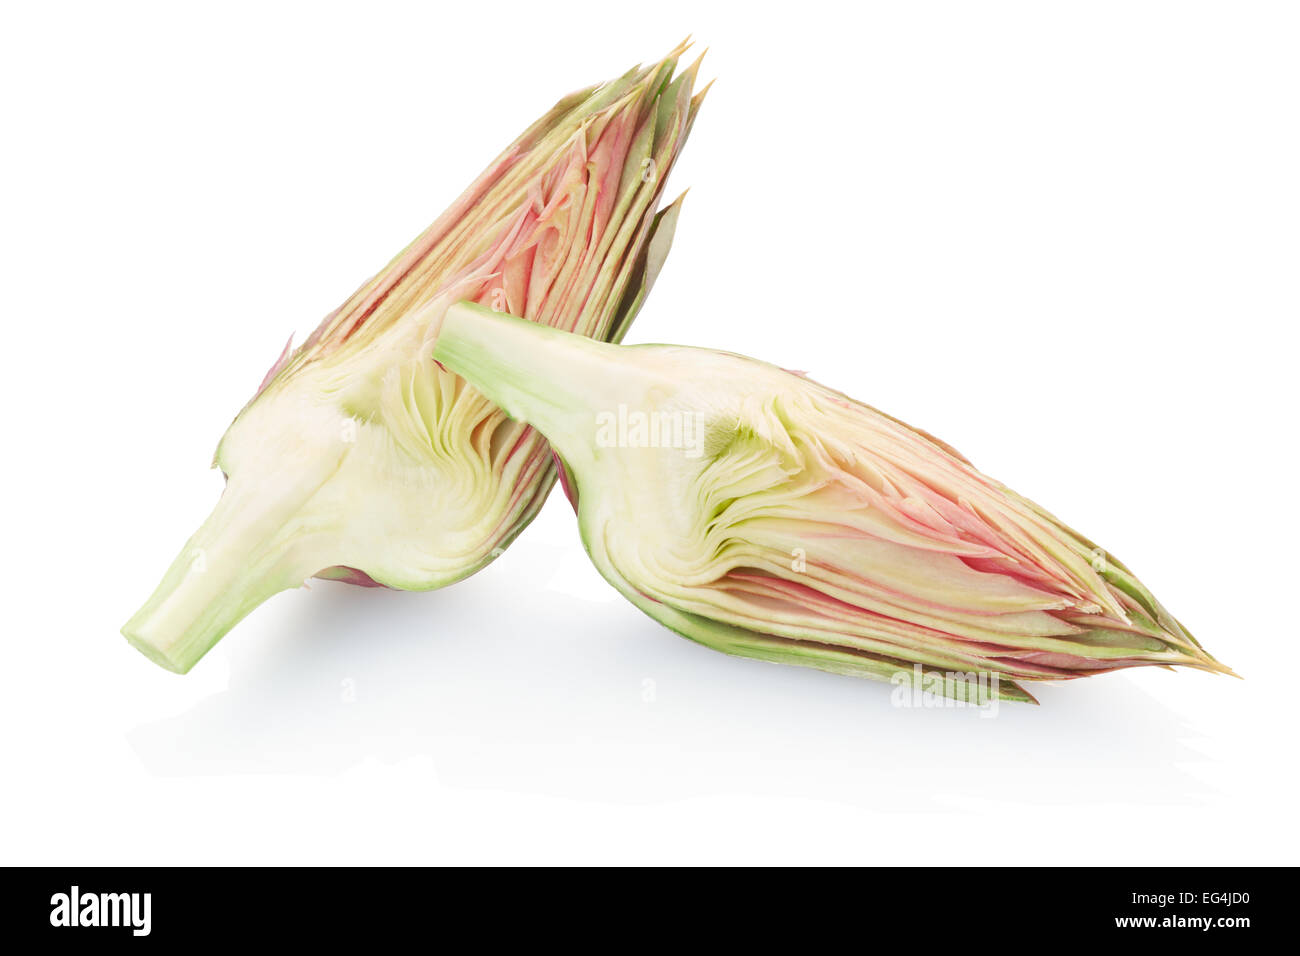 Artichoke slices - Stock Image